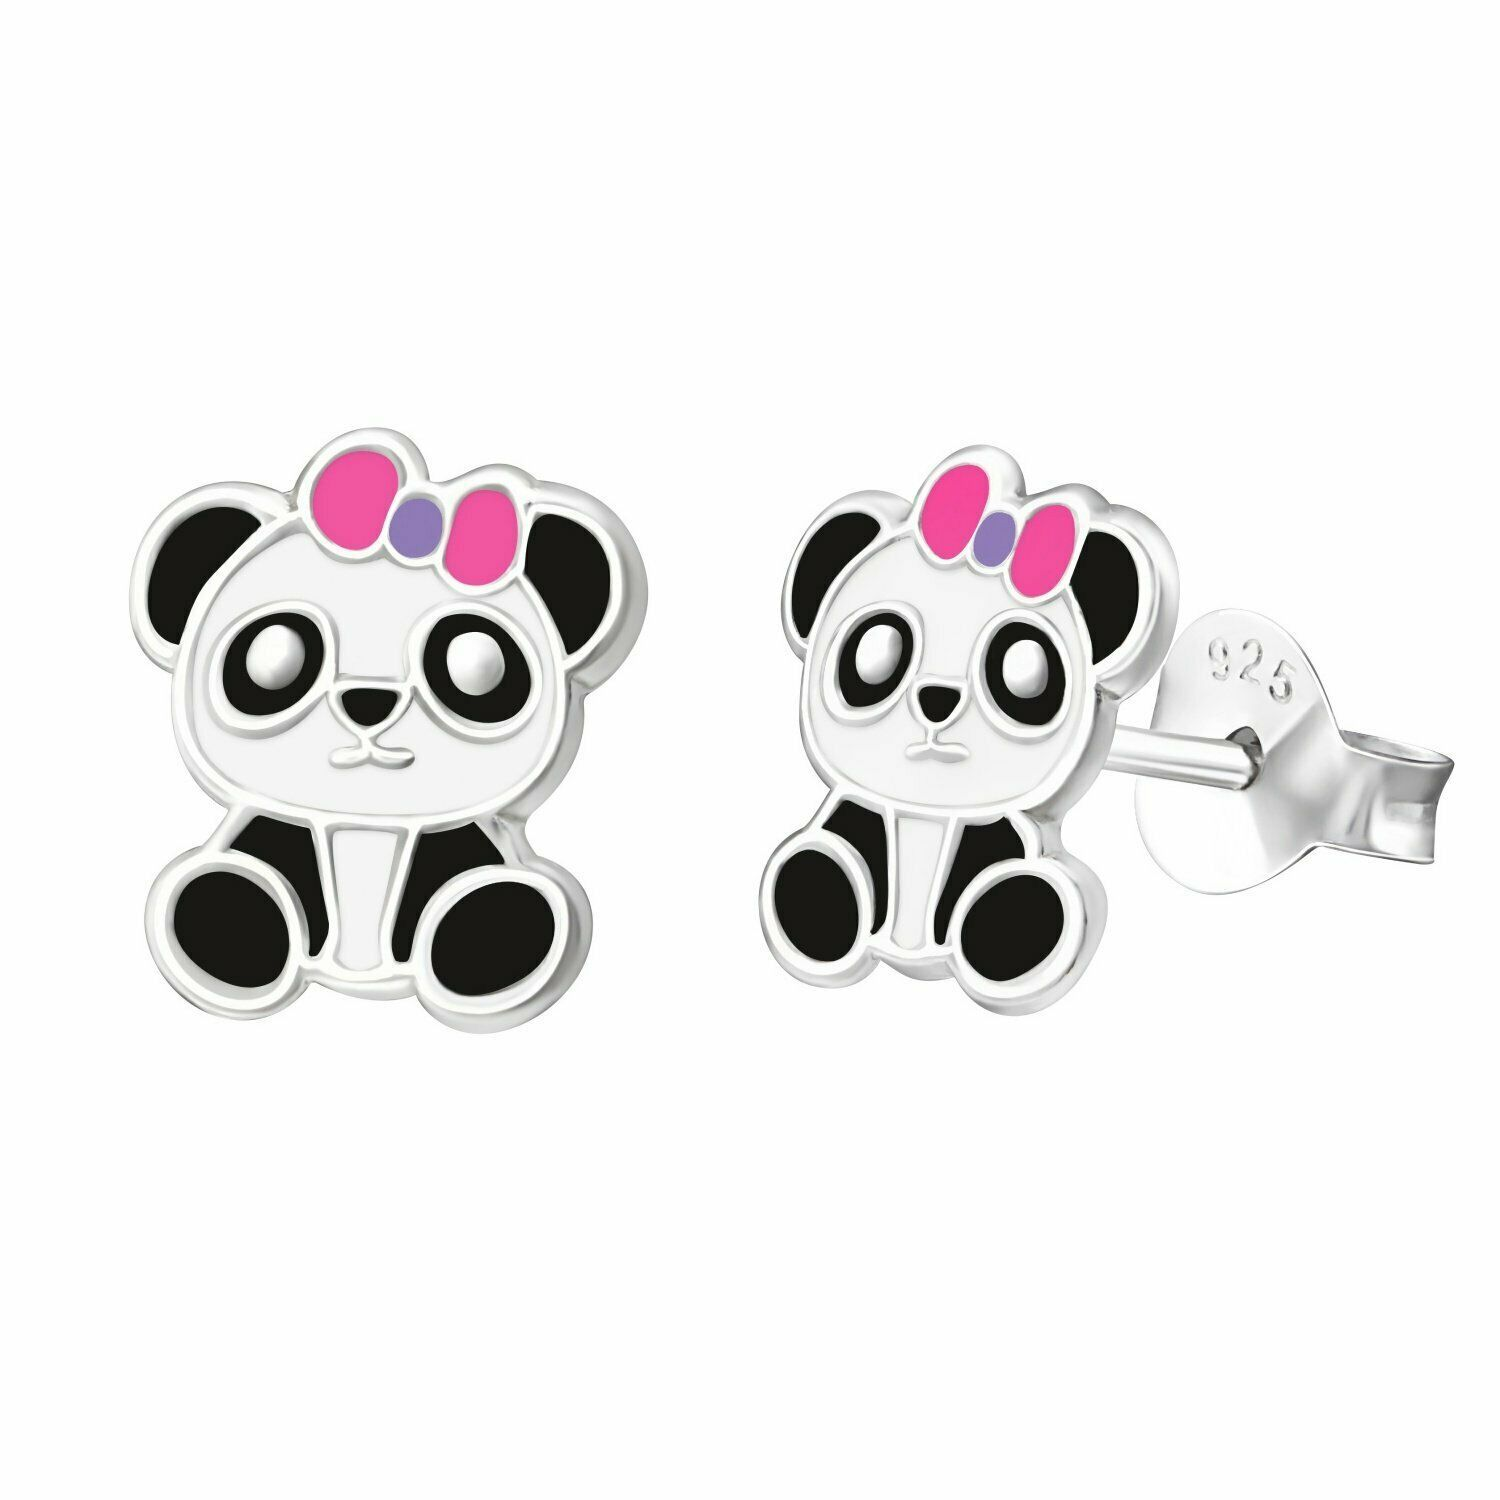 Primary image for Panda Stud Earrings Pink Ribbon in 925 Sterling Silver Cute Fashion Earrings